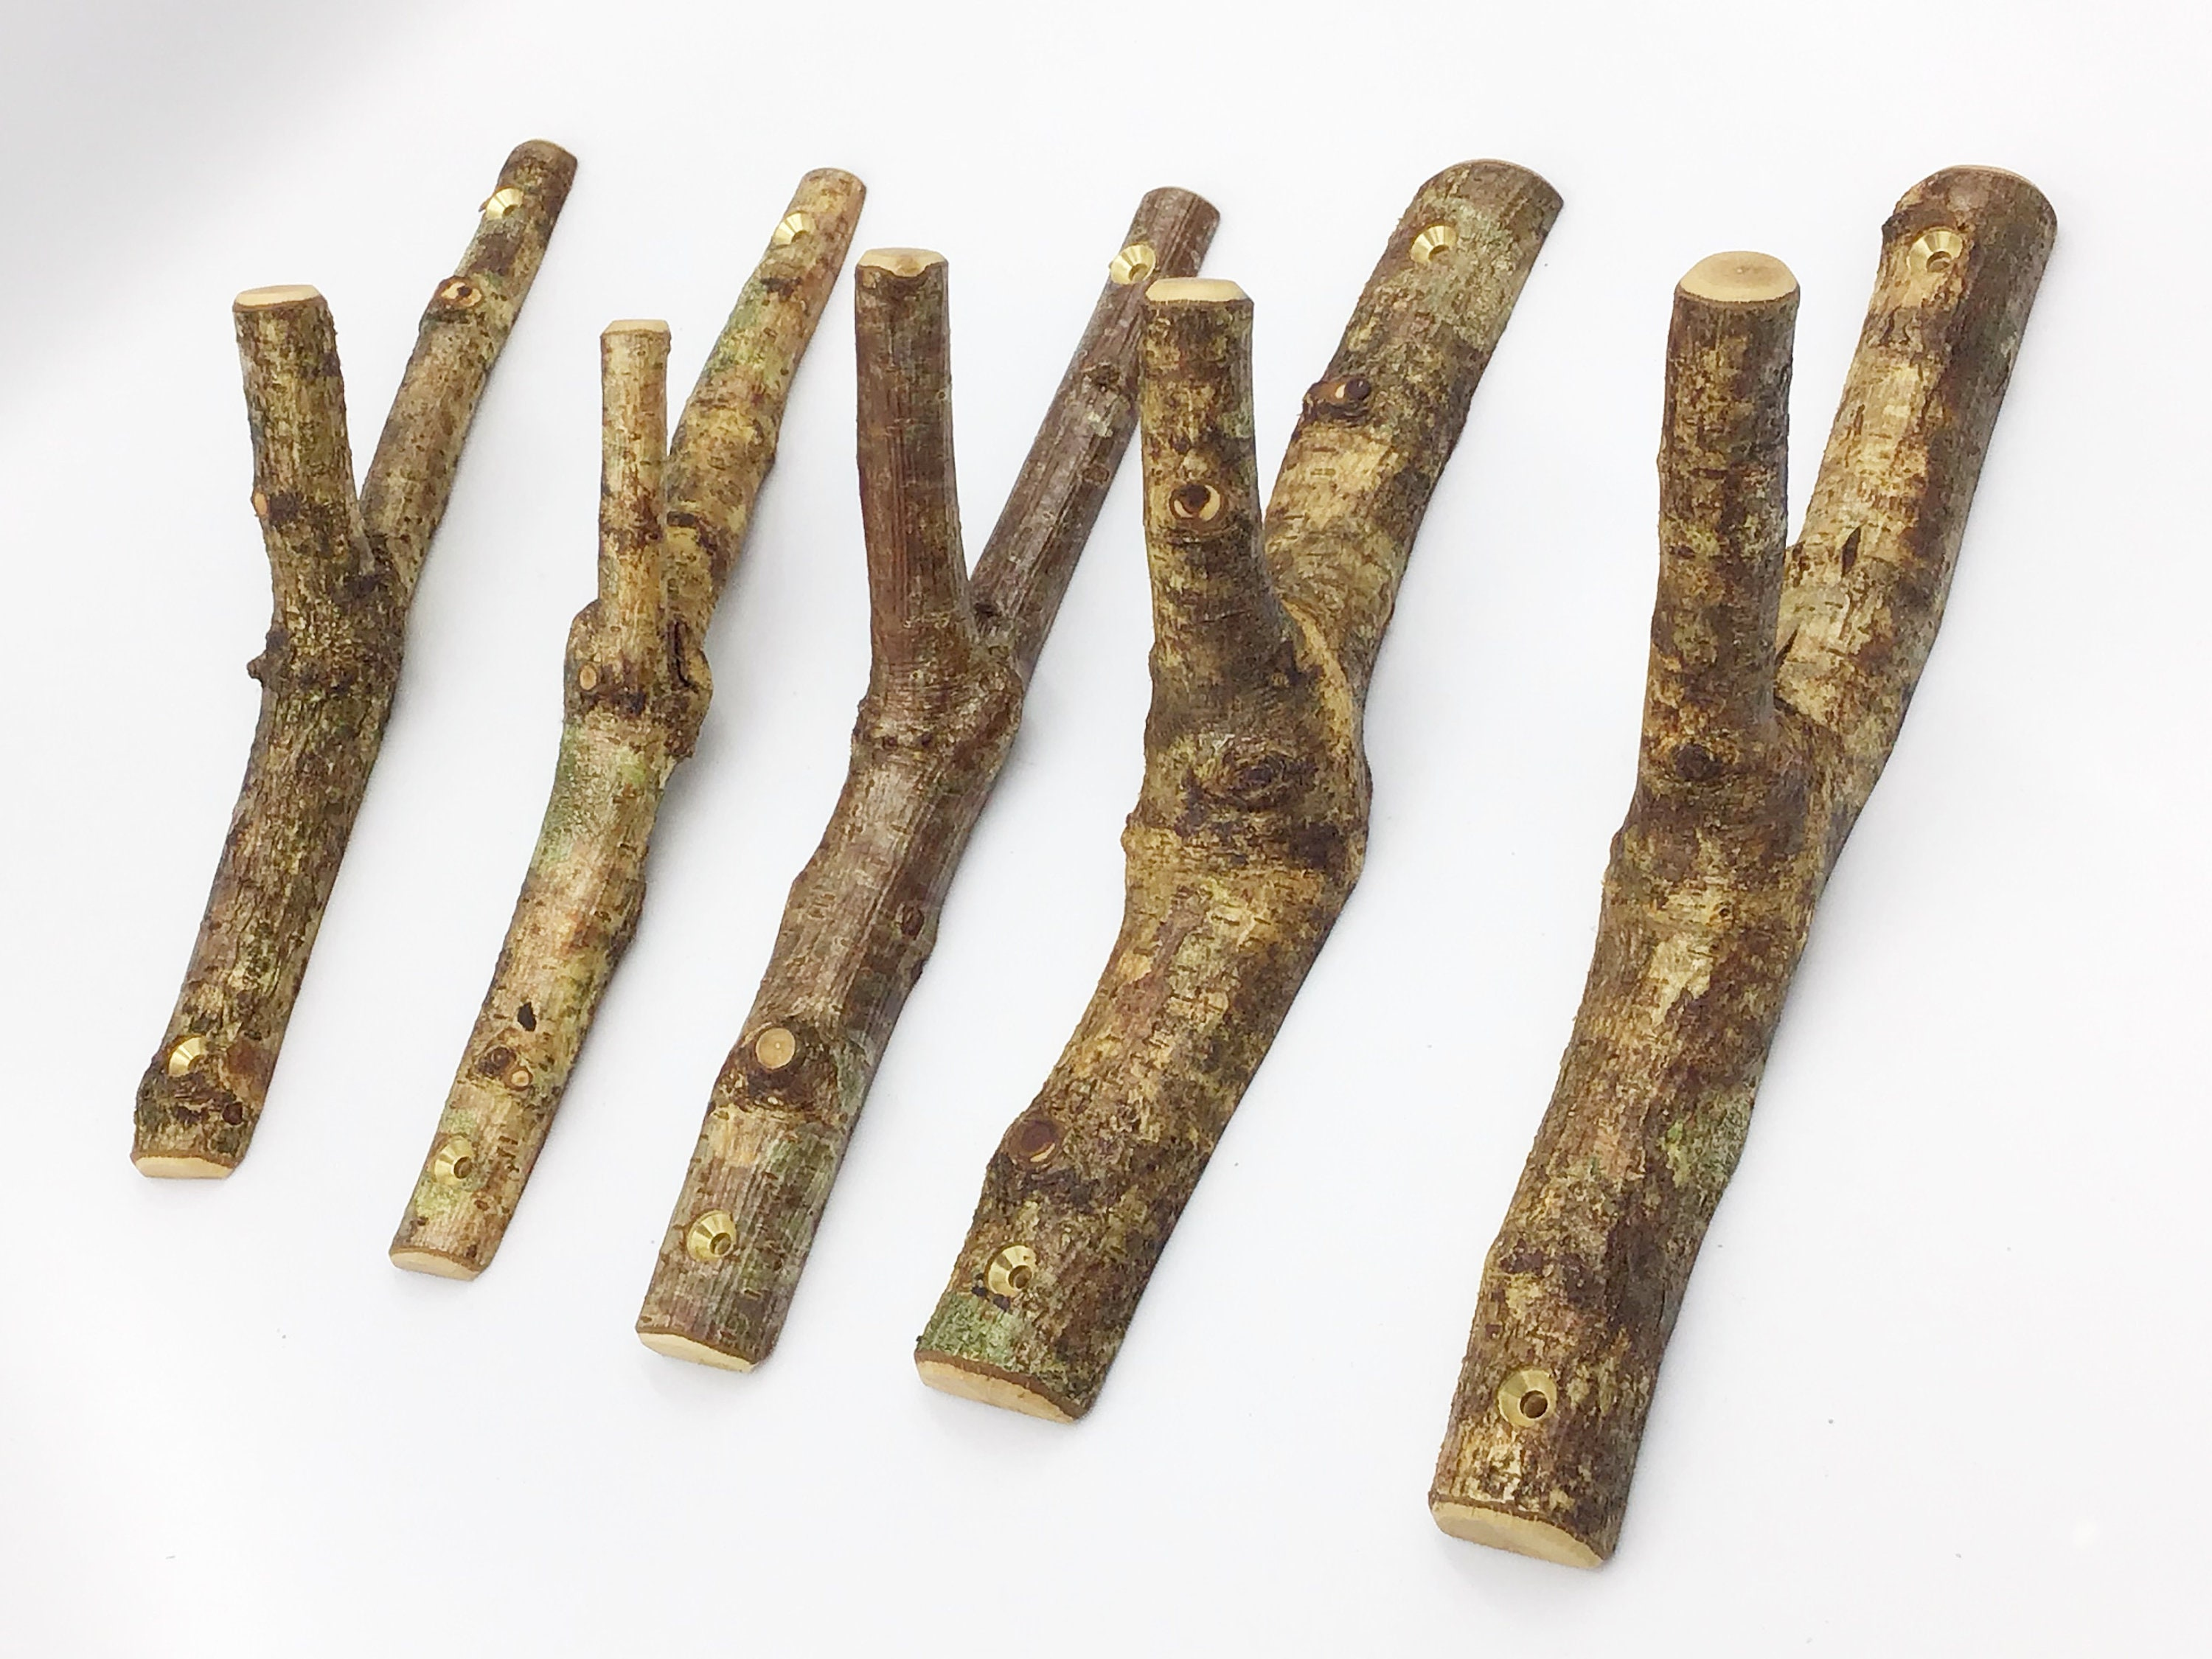 Coat Hooks Wooden Branch Coat Pegs From Natural Wood Set